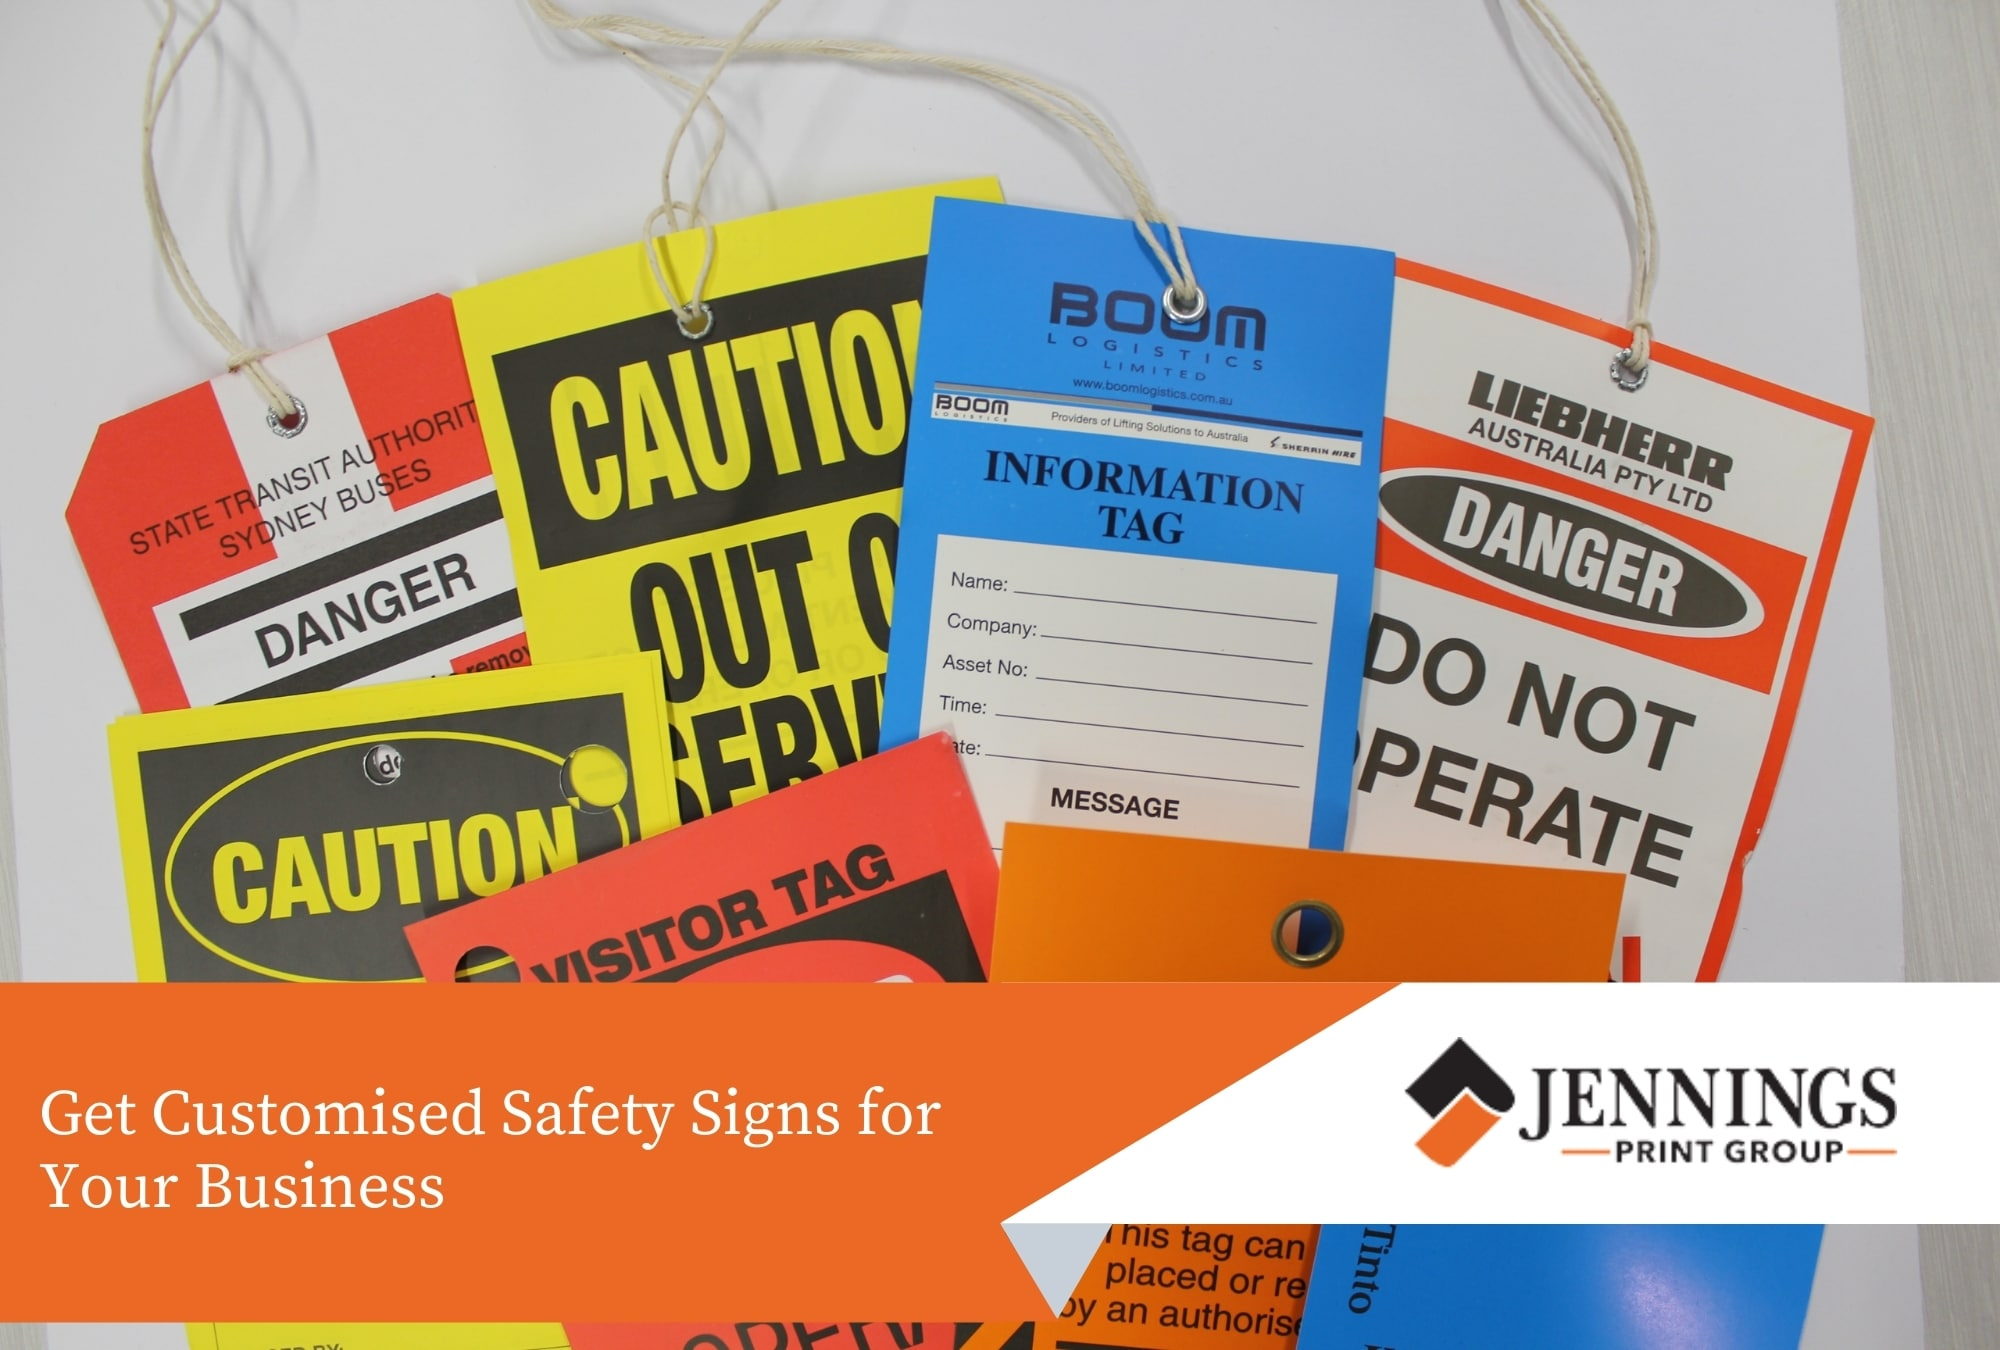 Get Customised Safety Signs for Your Business